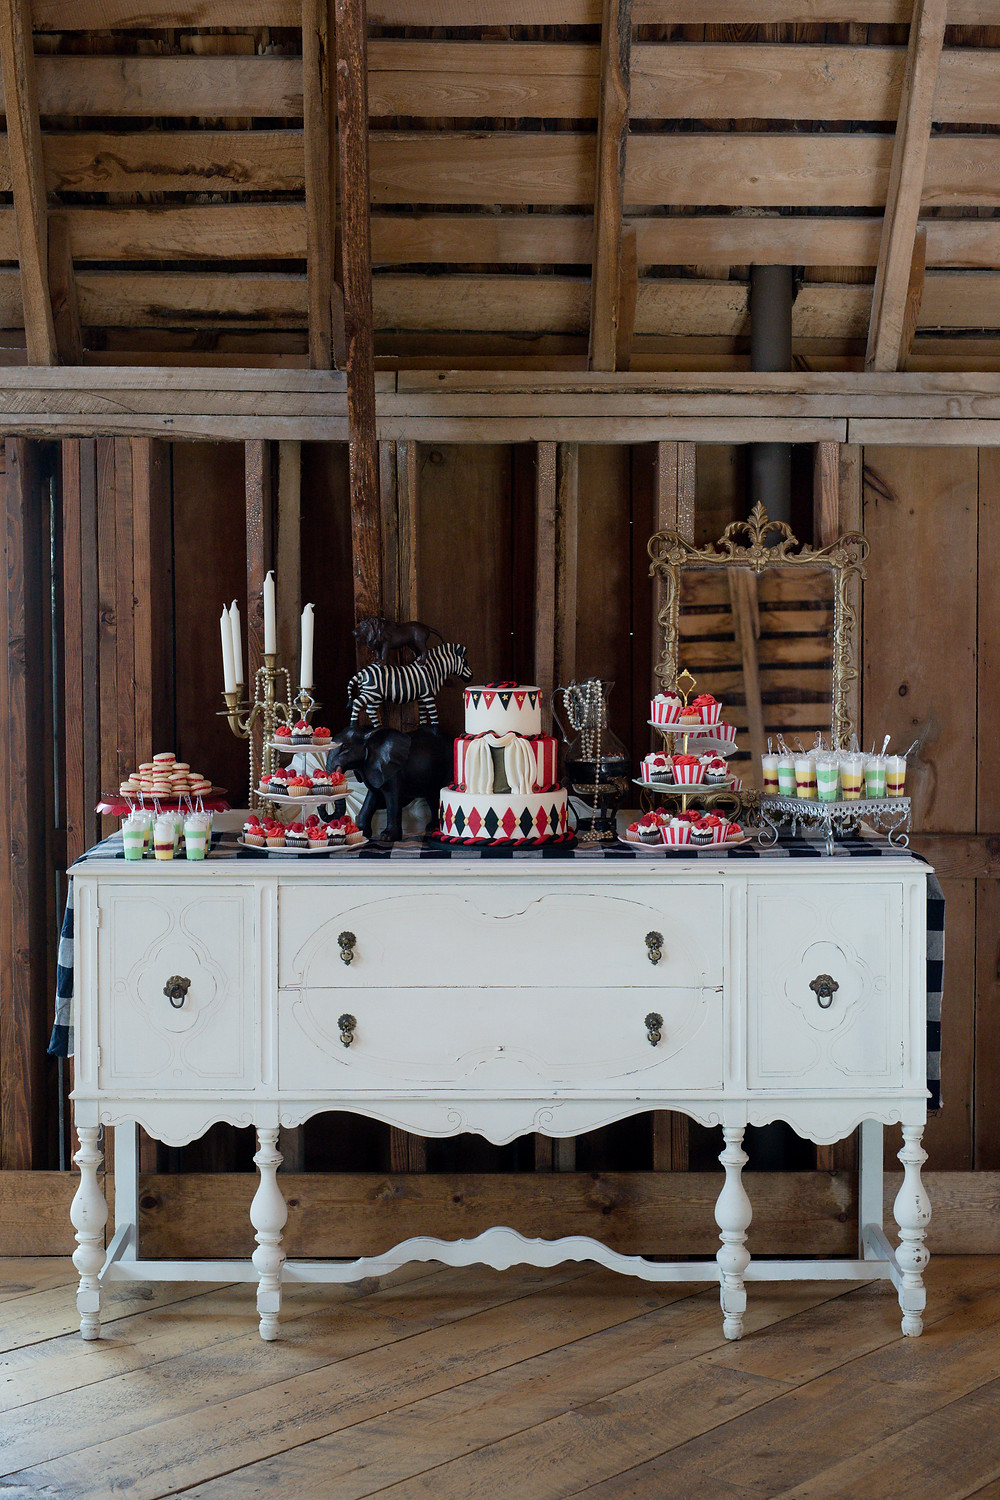 a vintage weathered buffet for an event at a barn